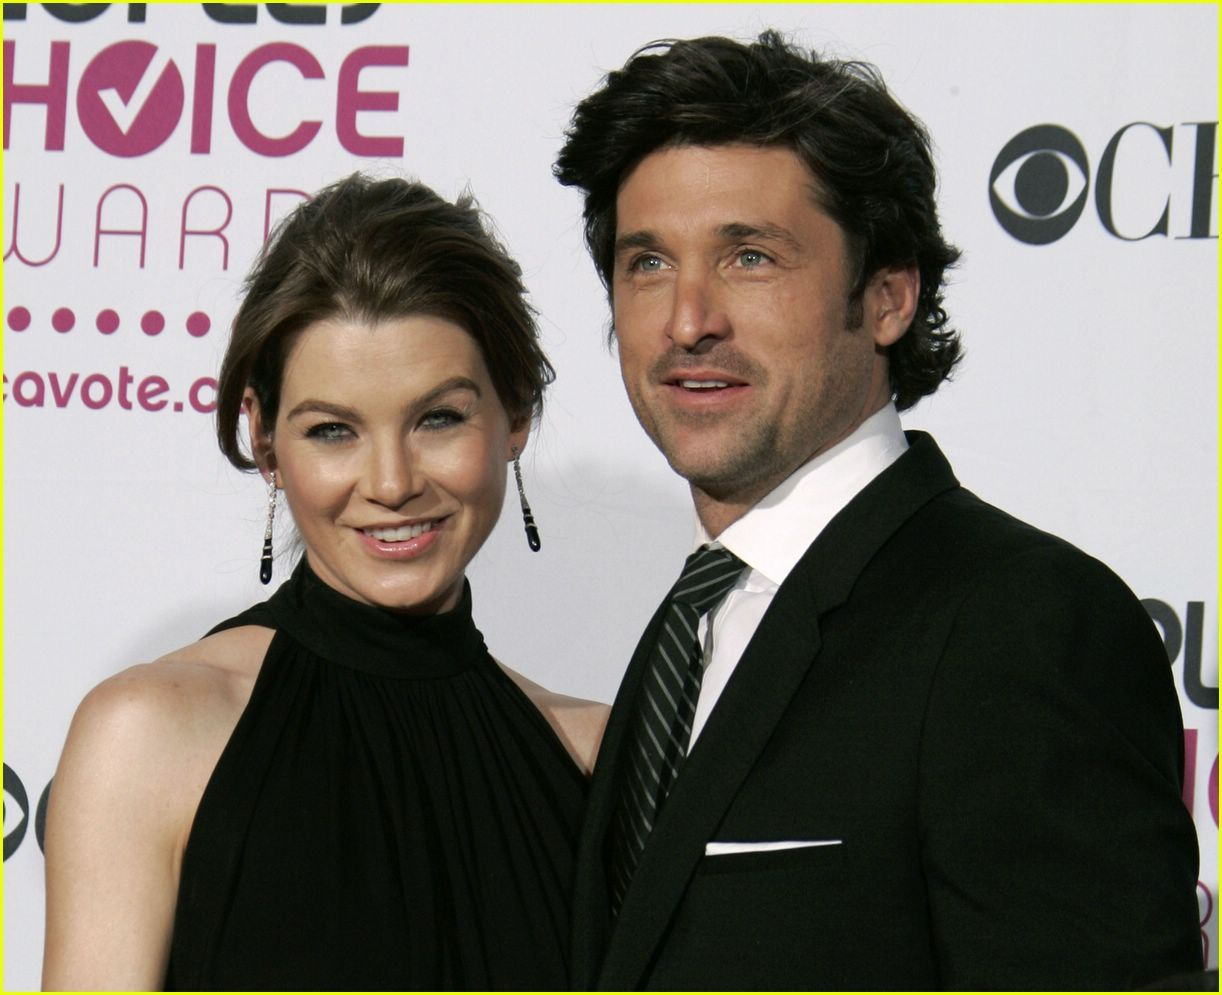 greys anatomy cast - Google Search | I Only Have Eyes For You ...